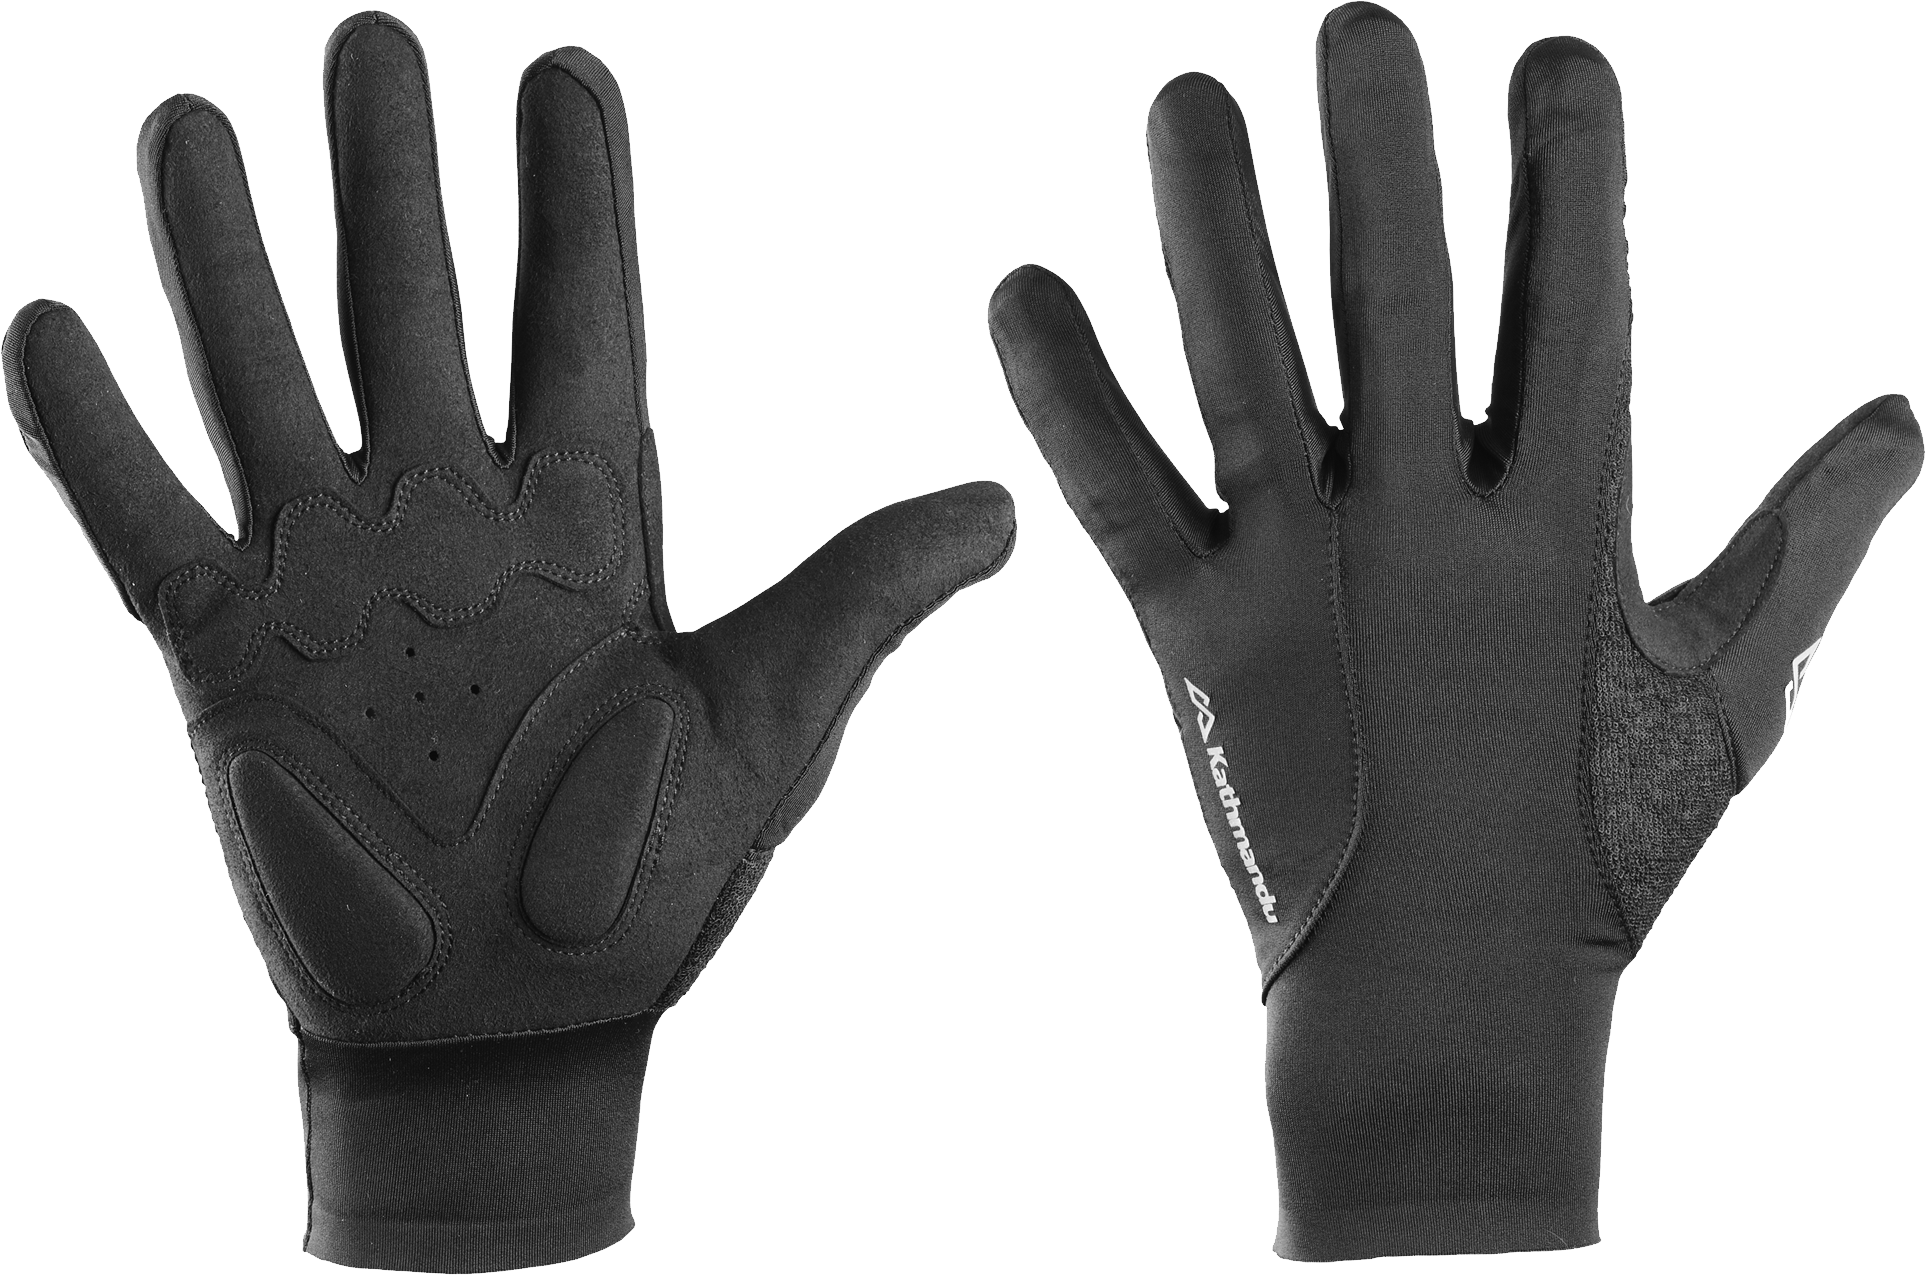 Transparent gloves. Png image purepng free